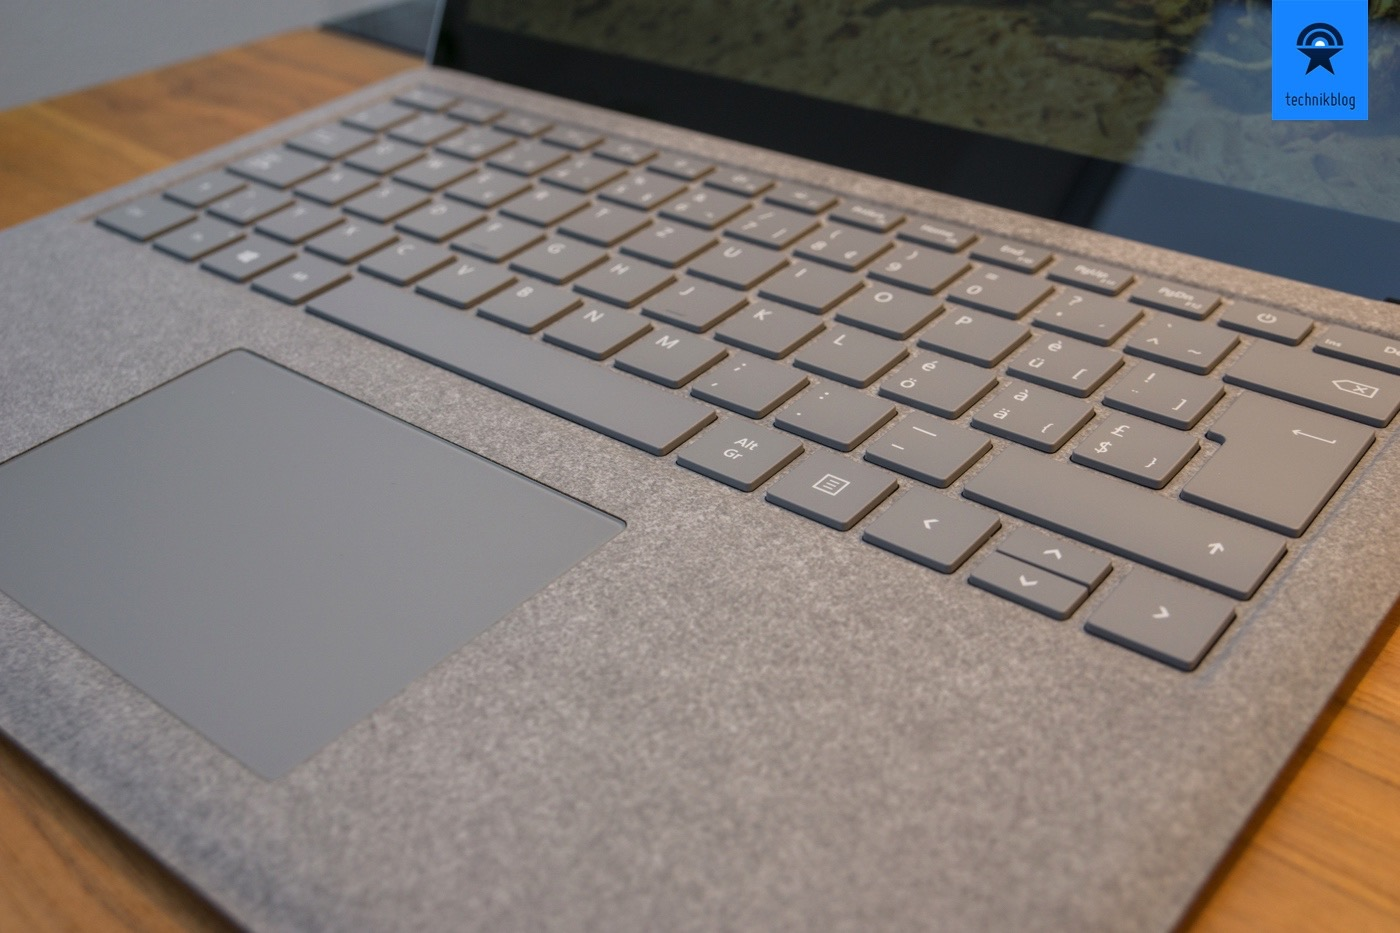 how to clean surface laptop alcantara